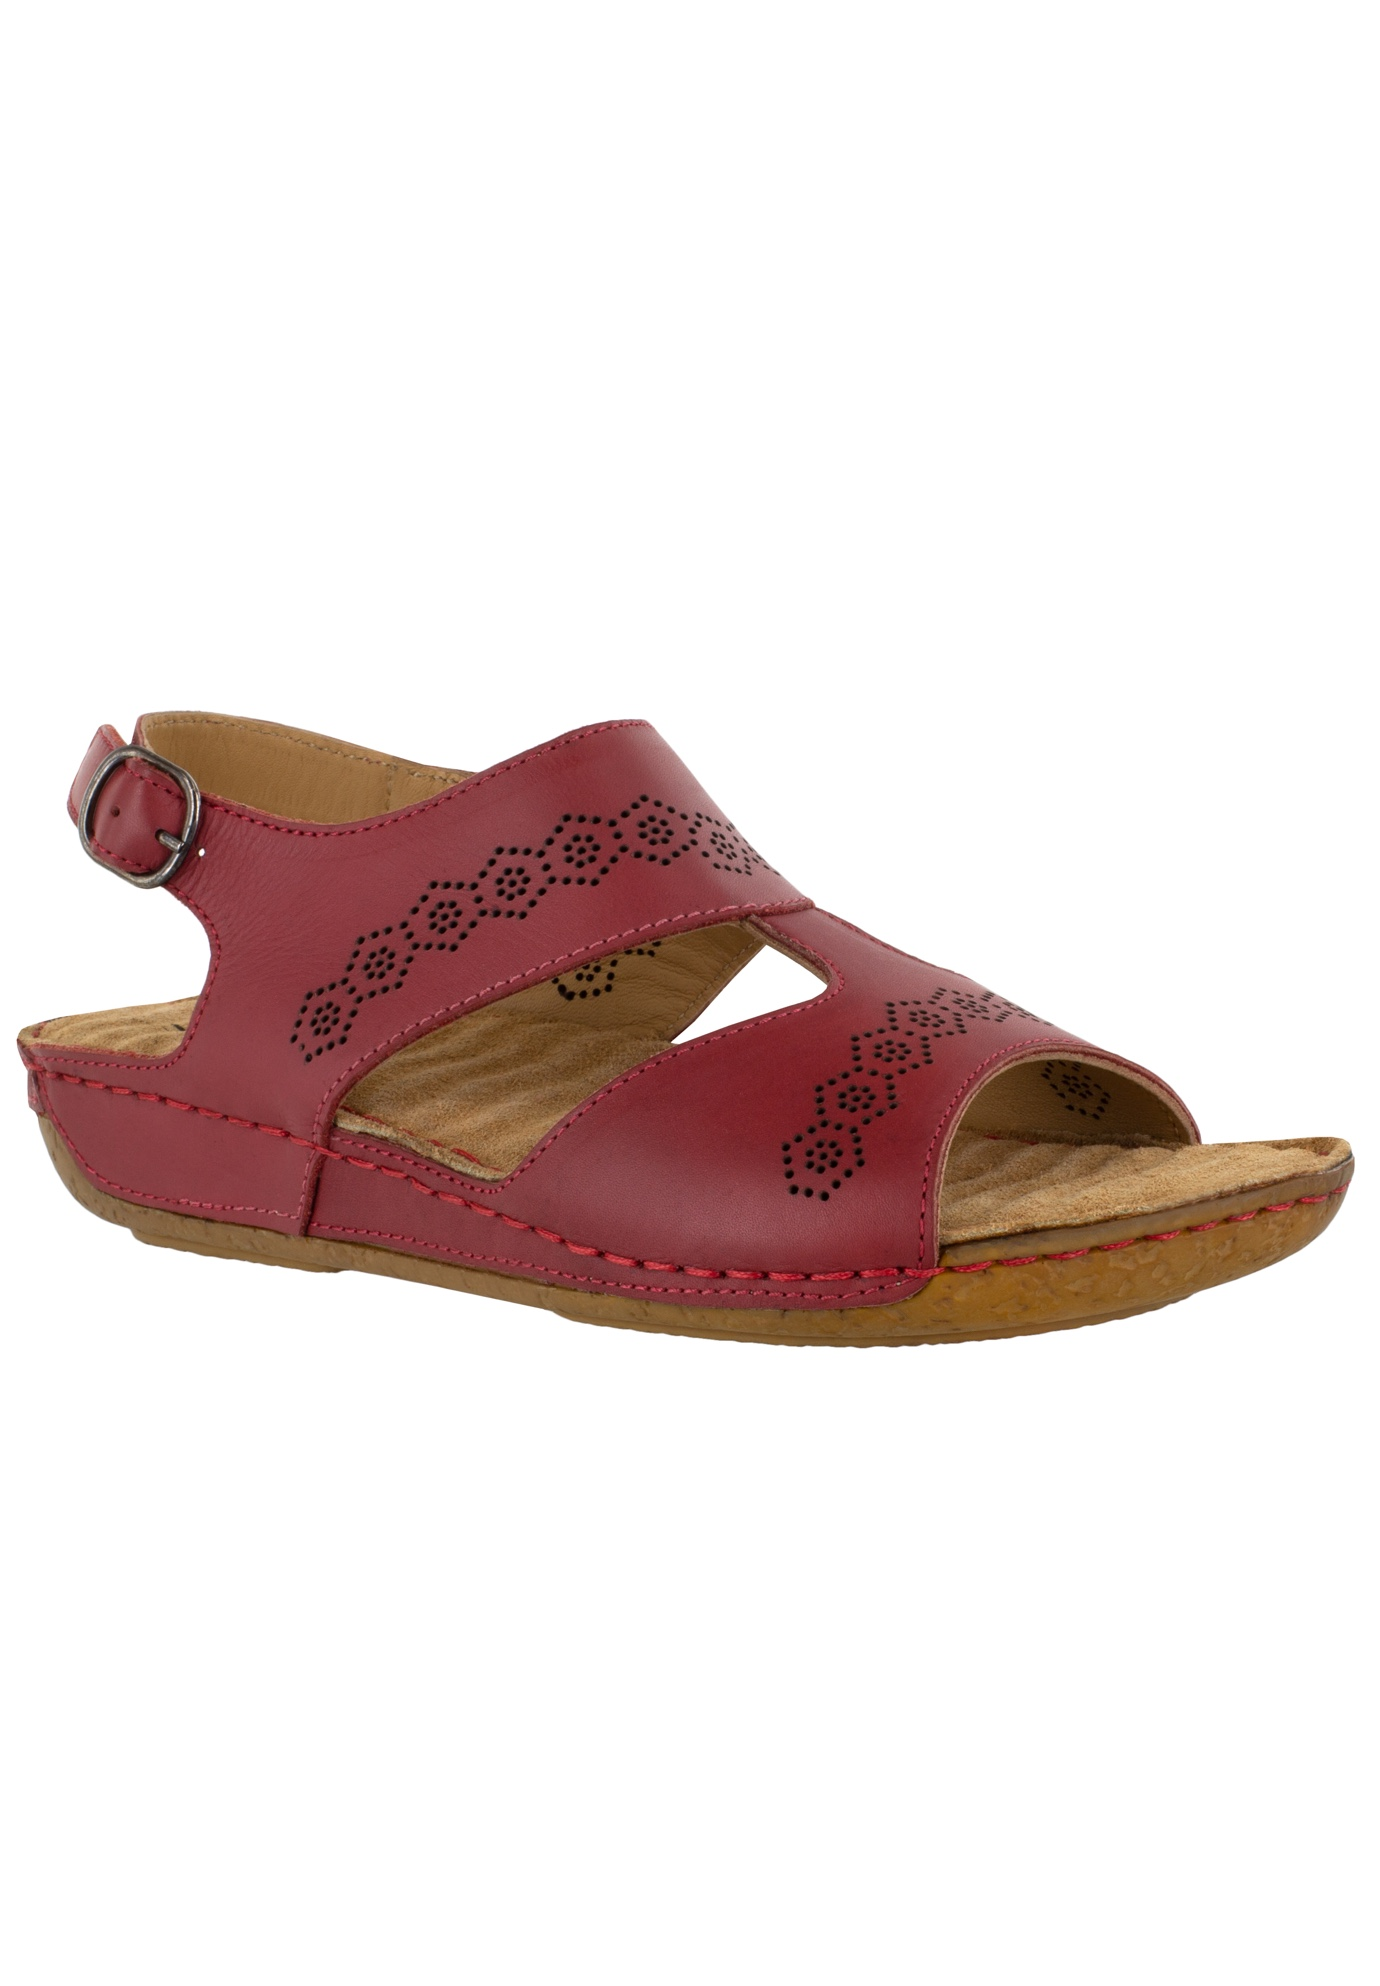 Sloane Sandals by Easy Street,